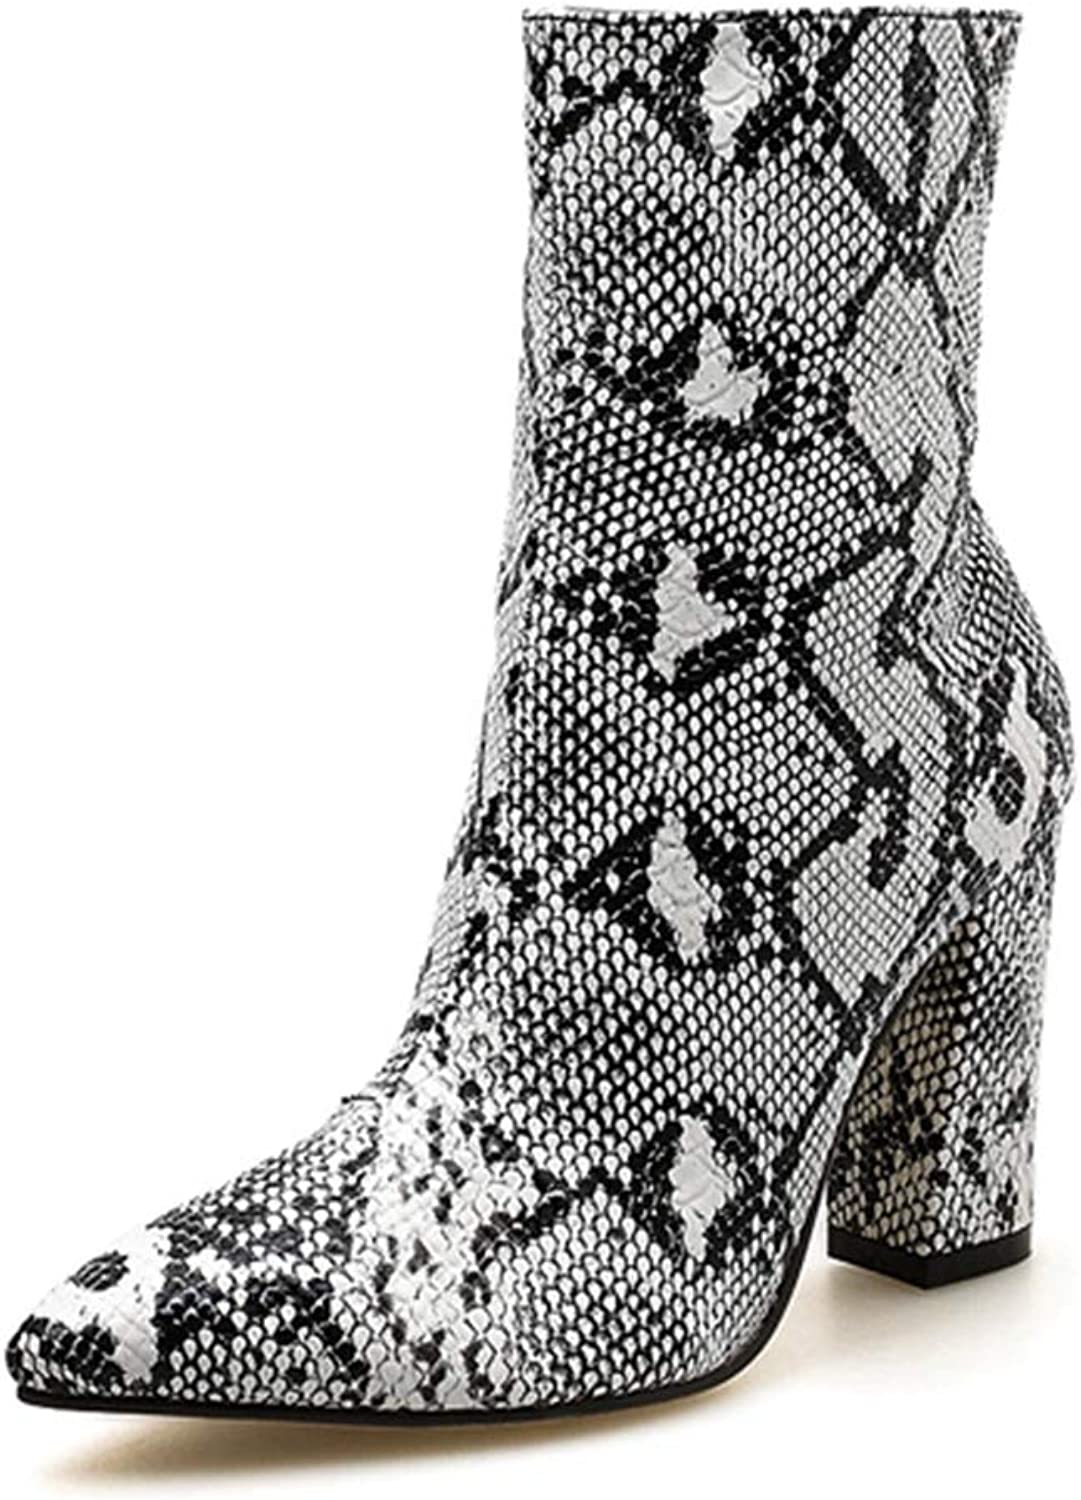 CYBLING Women Sexy Ankle Boots Snakeskin Pattern Chunky High Heel Pointed Toe Short Booties